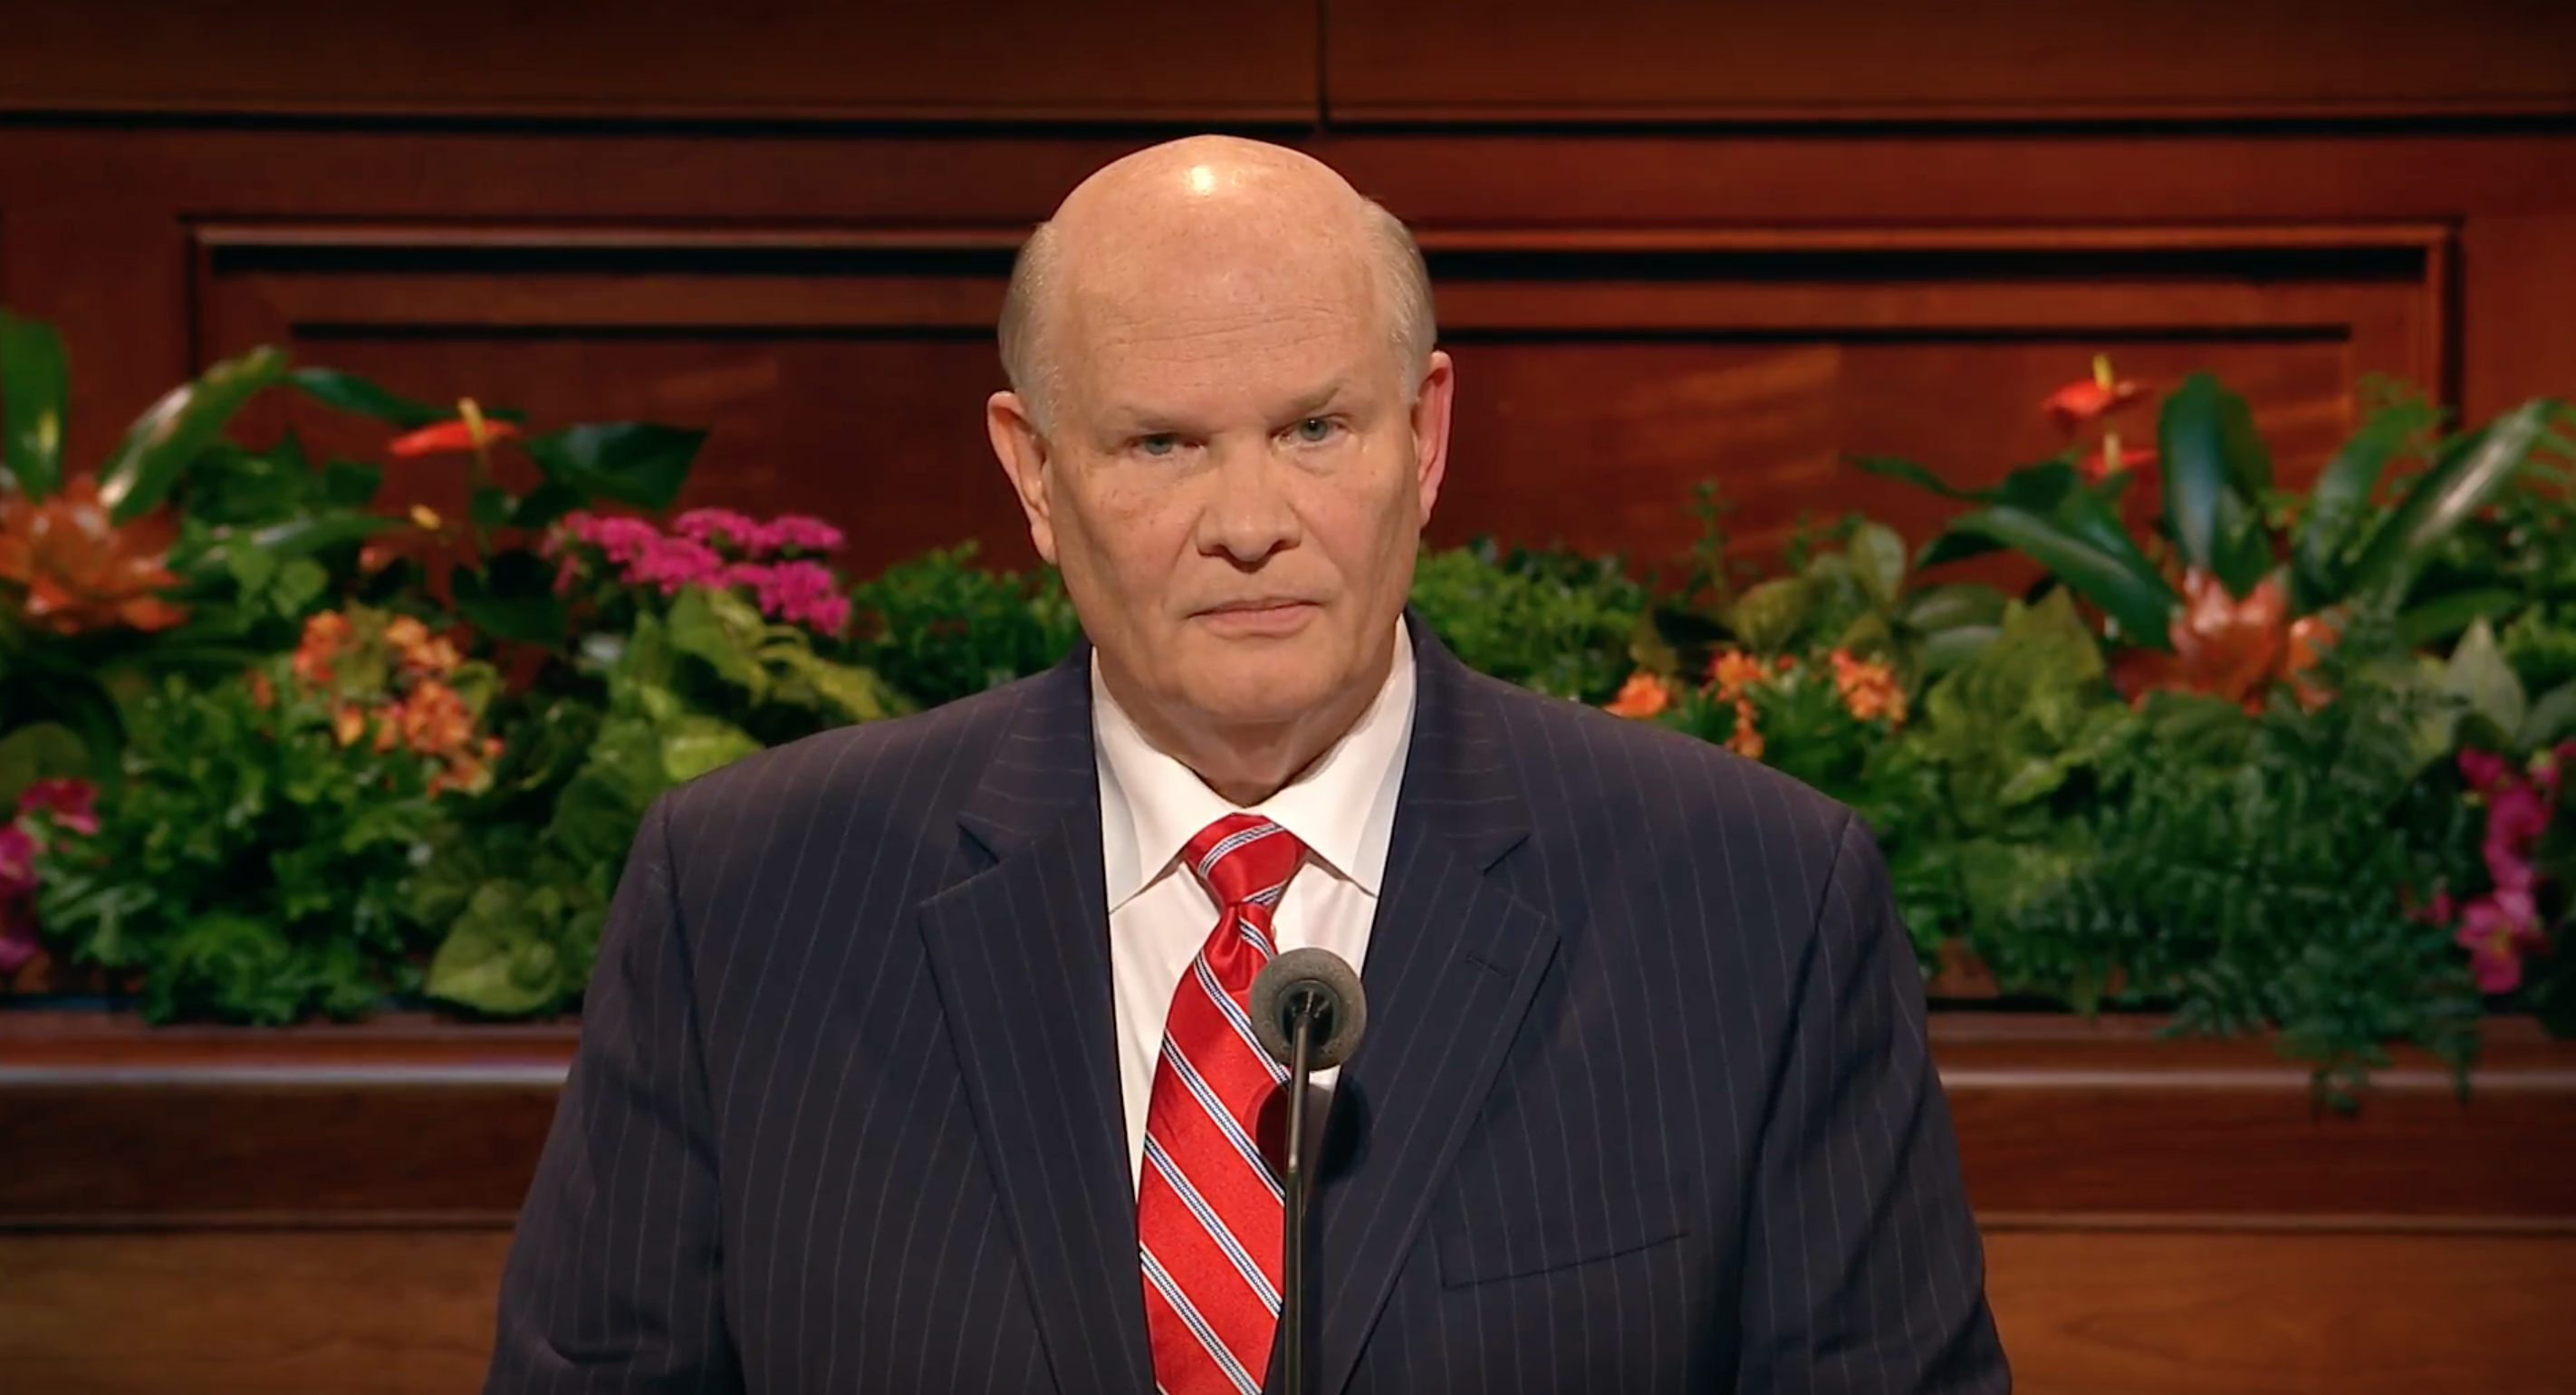 Elder Dale G. Renlund gives an address during the Sunday afternoon session of October 2018 general conference.